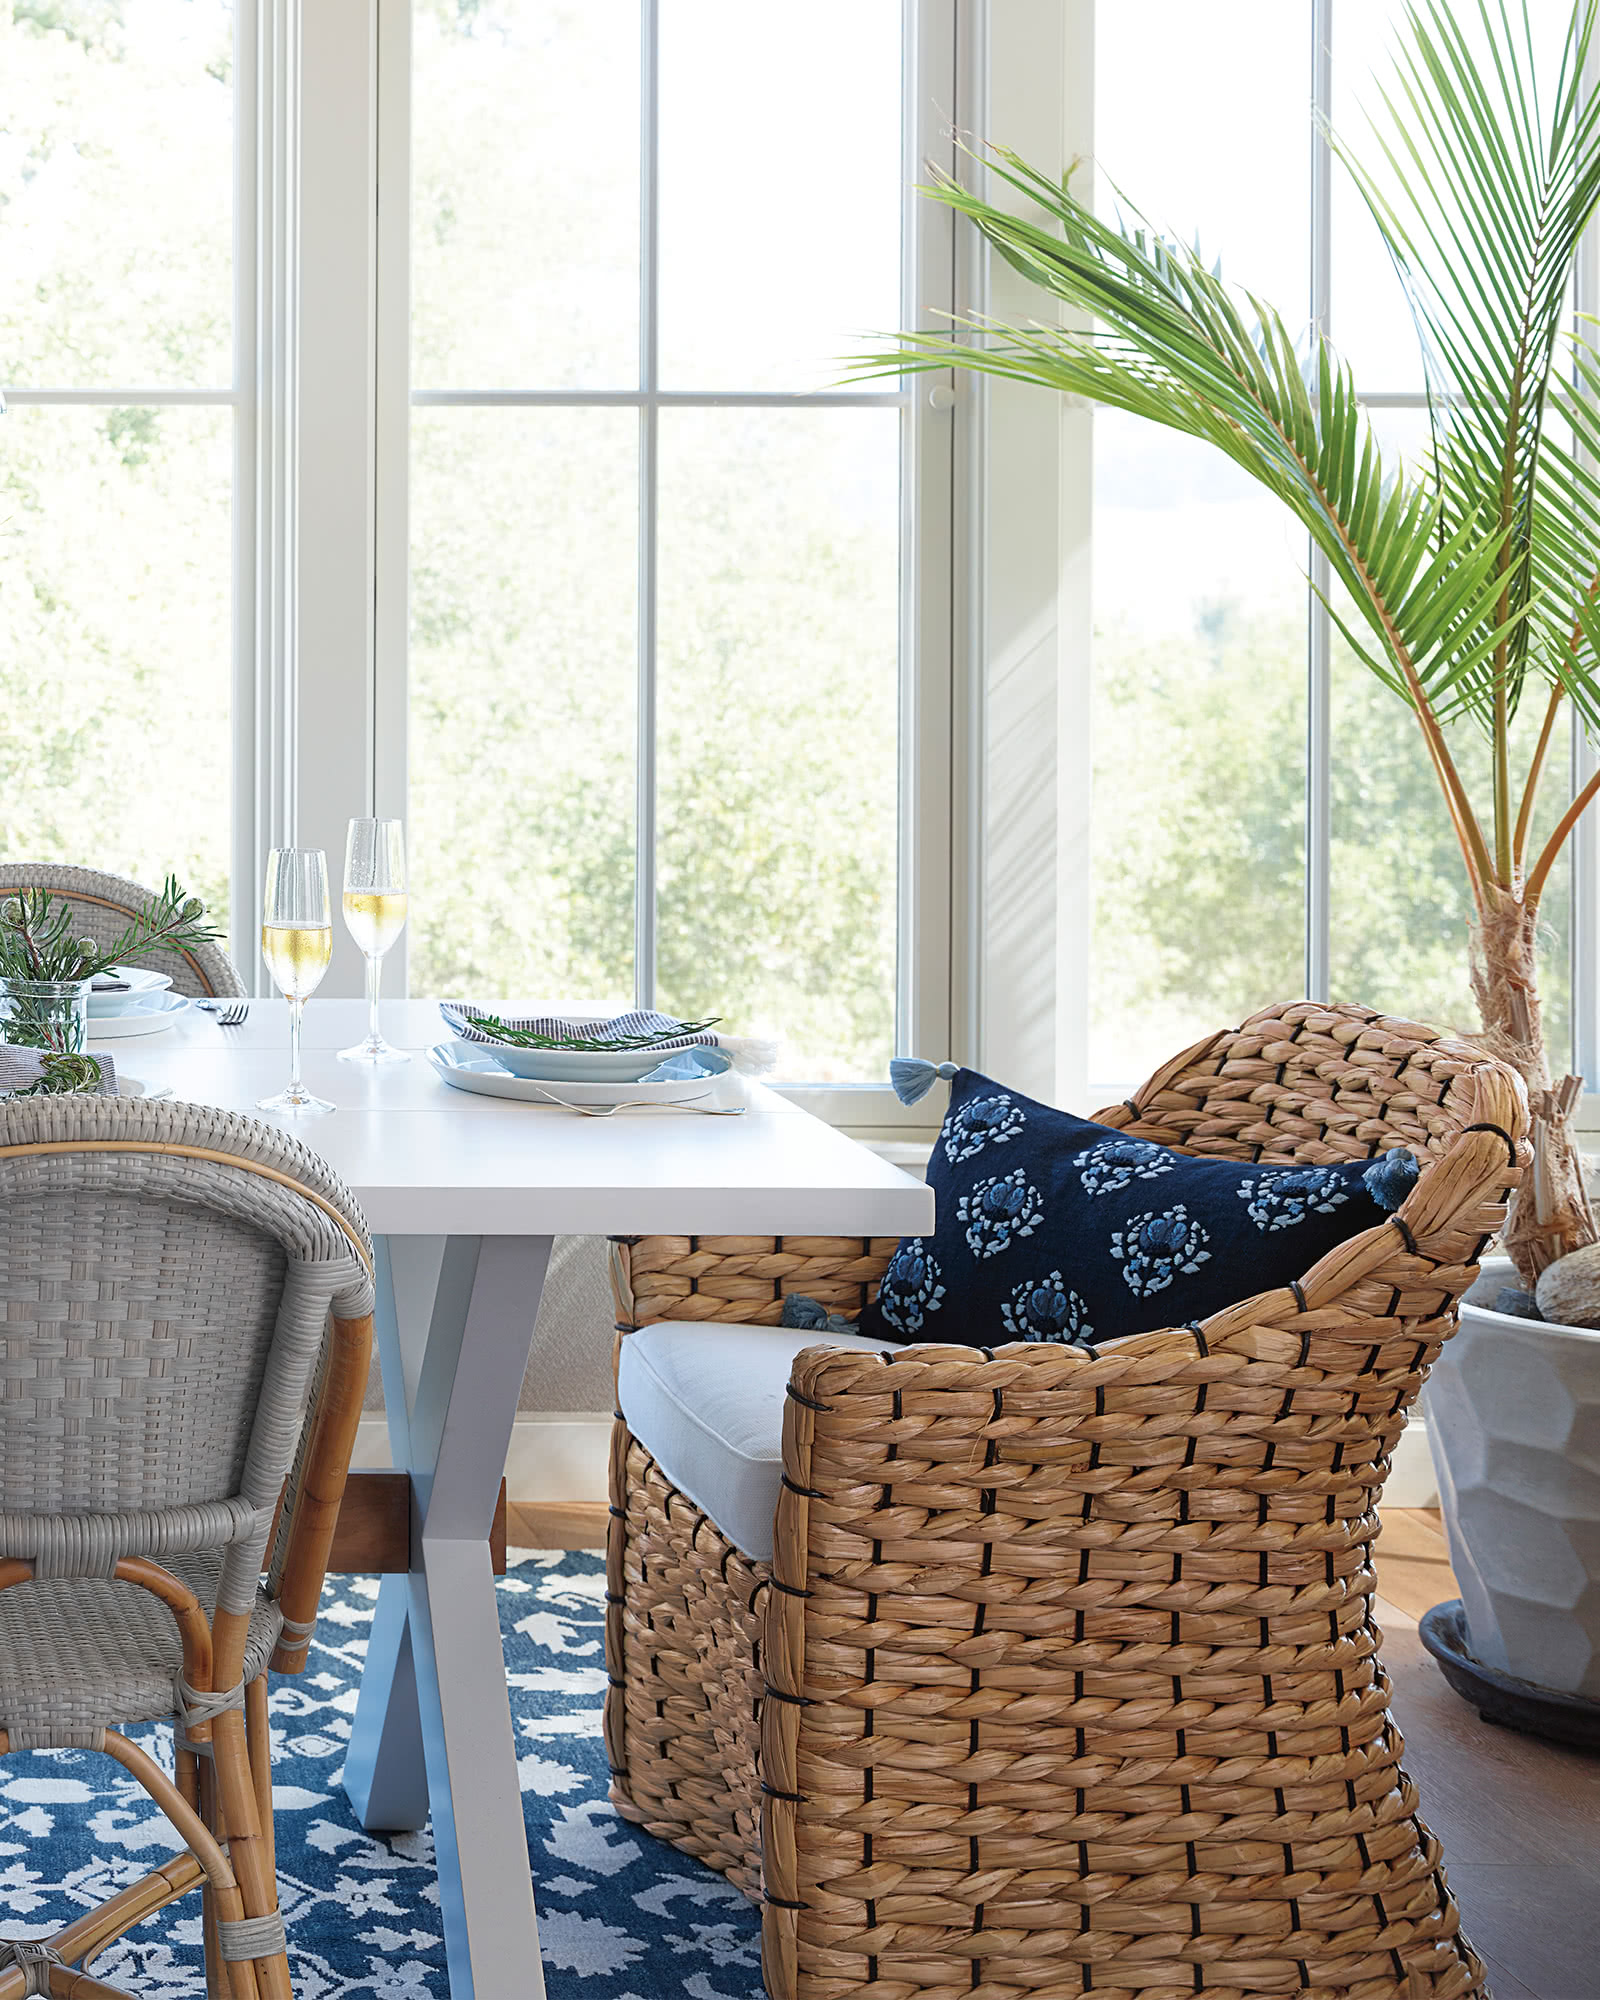 Islesboro Chair in a beautiful blue and white coastal style dining area.